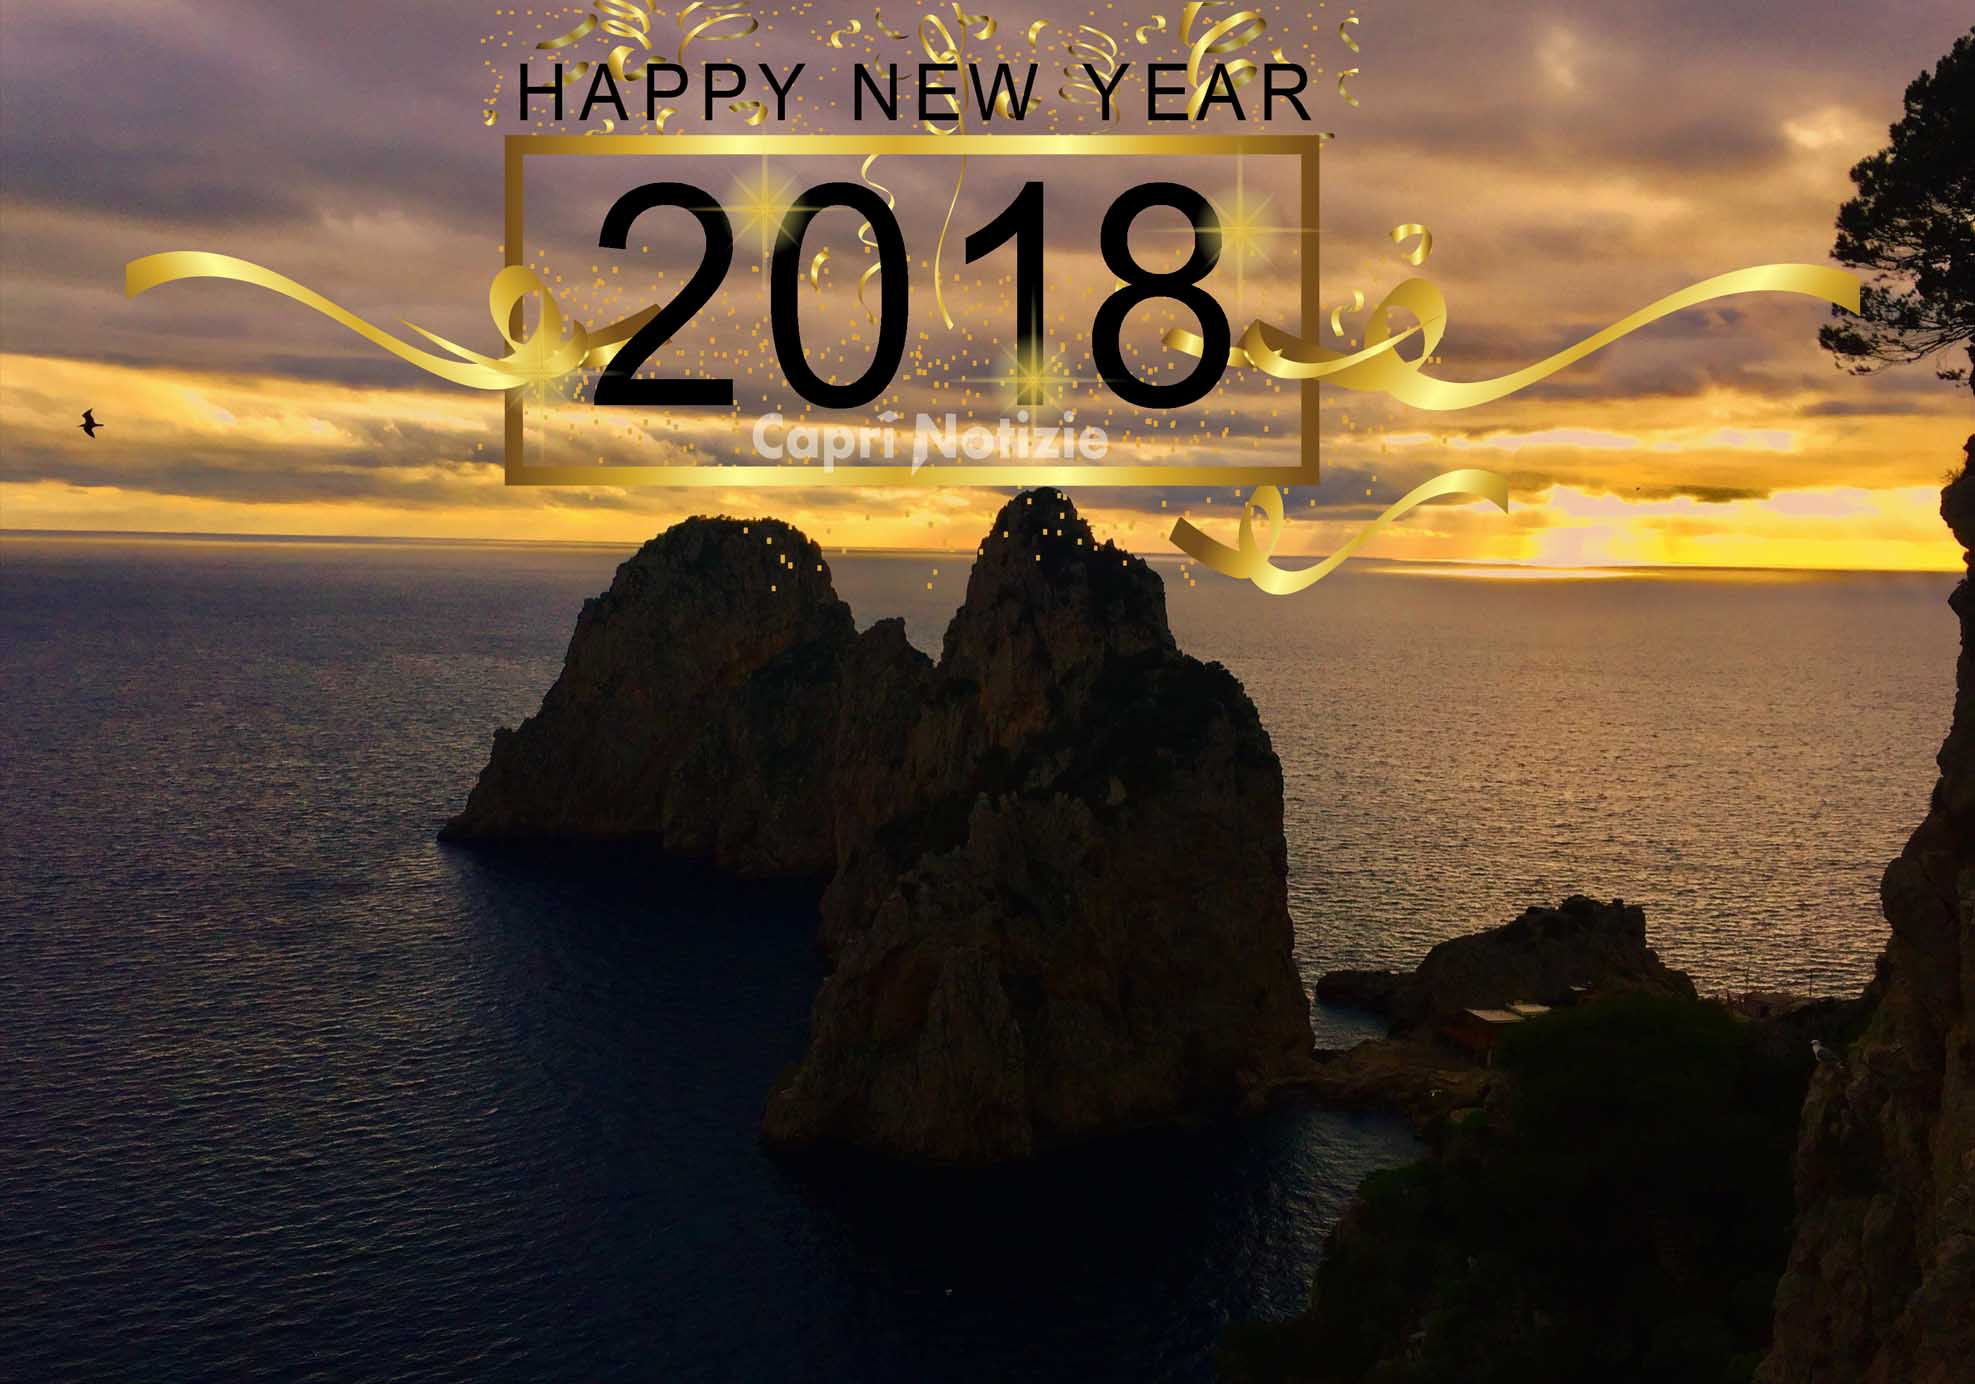 capodanno capri 2018 happy new year 2018 Capri Island